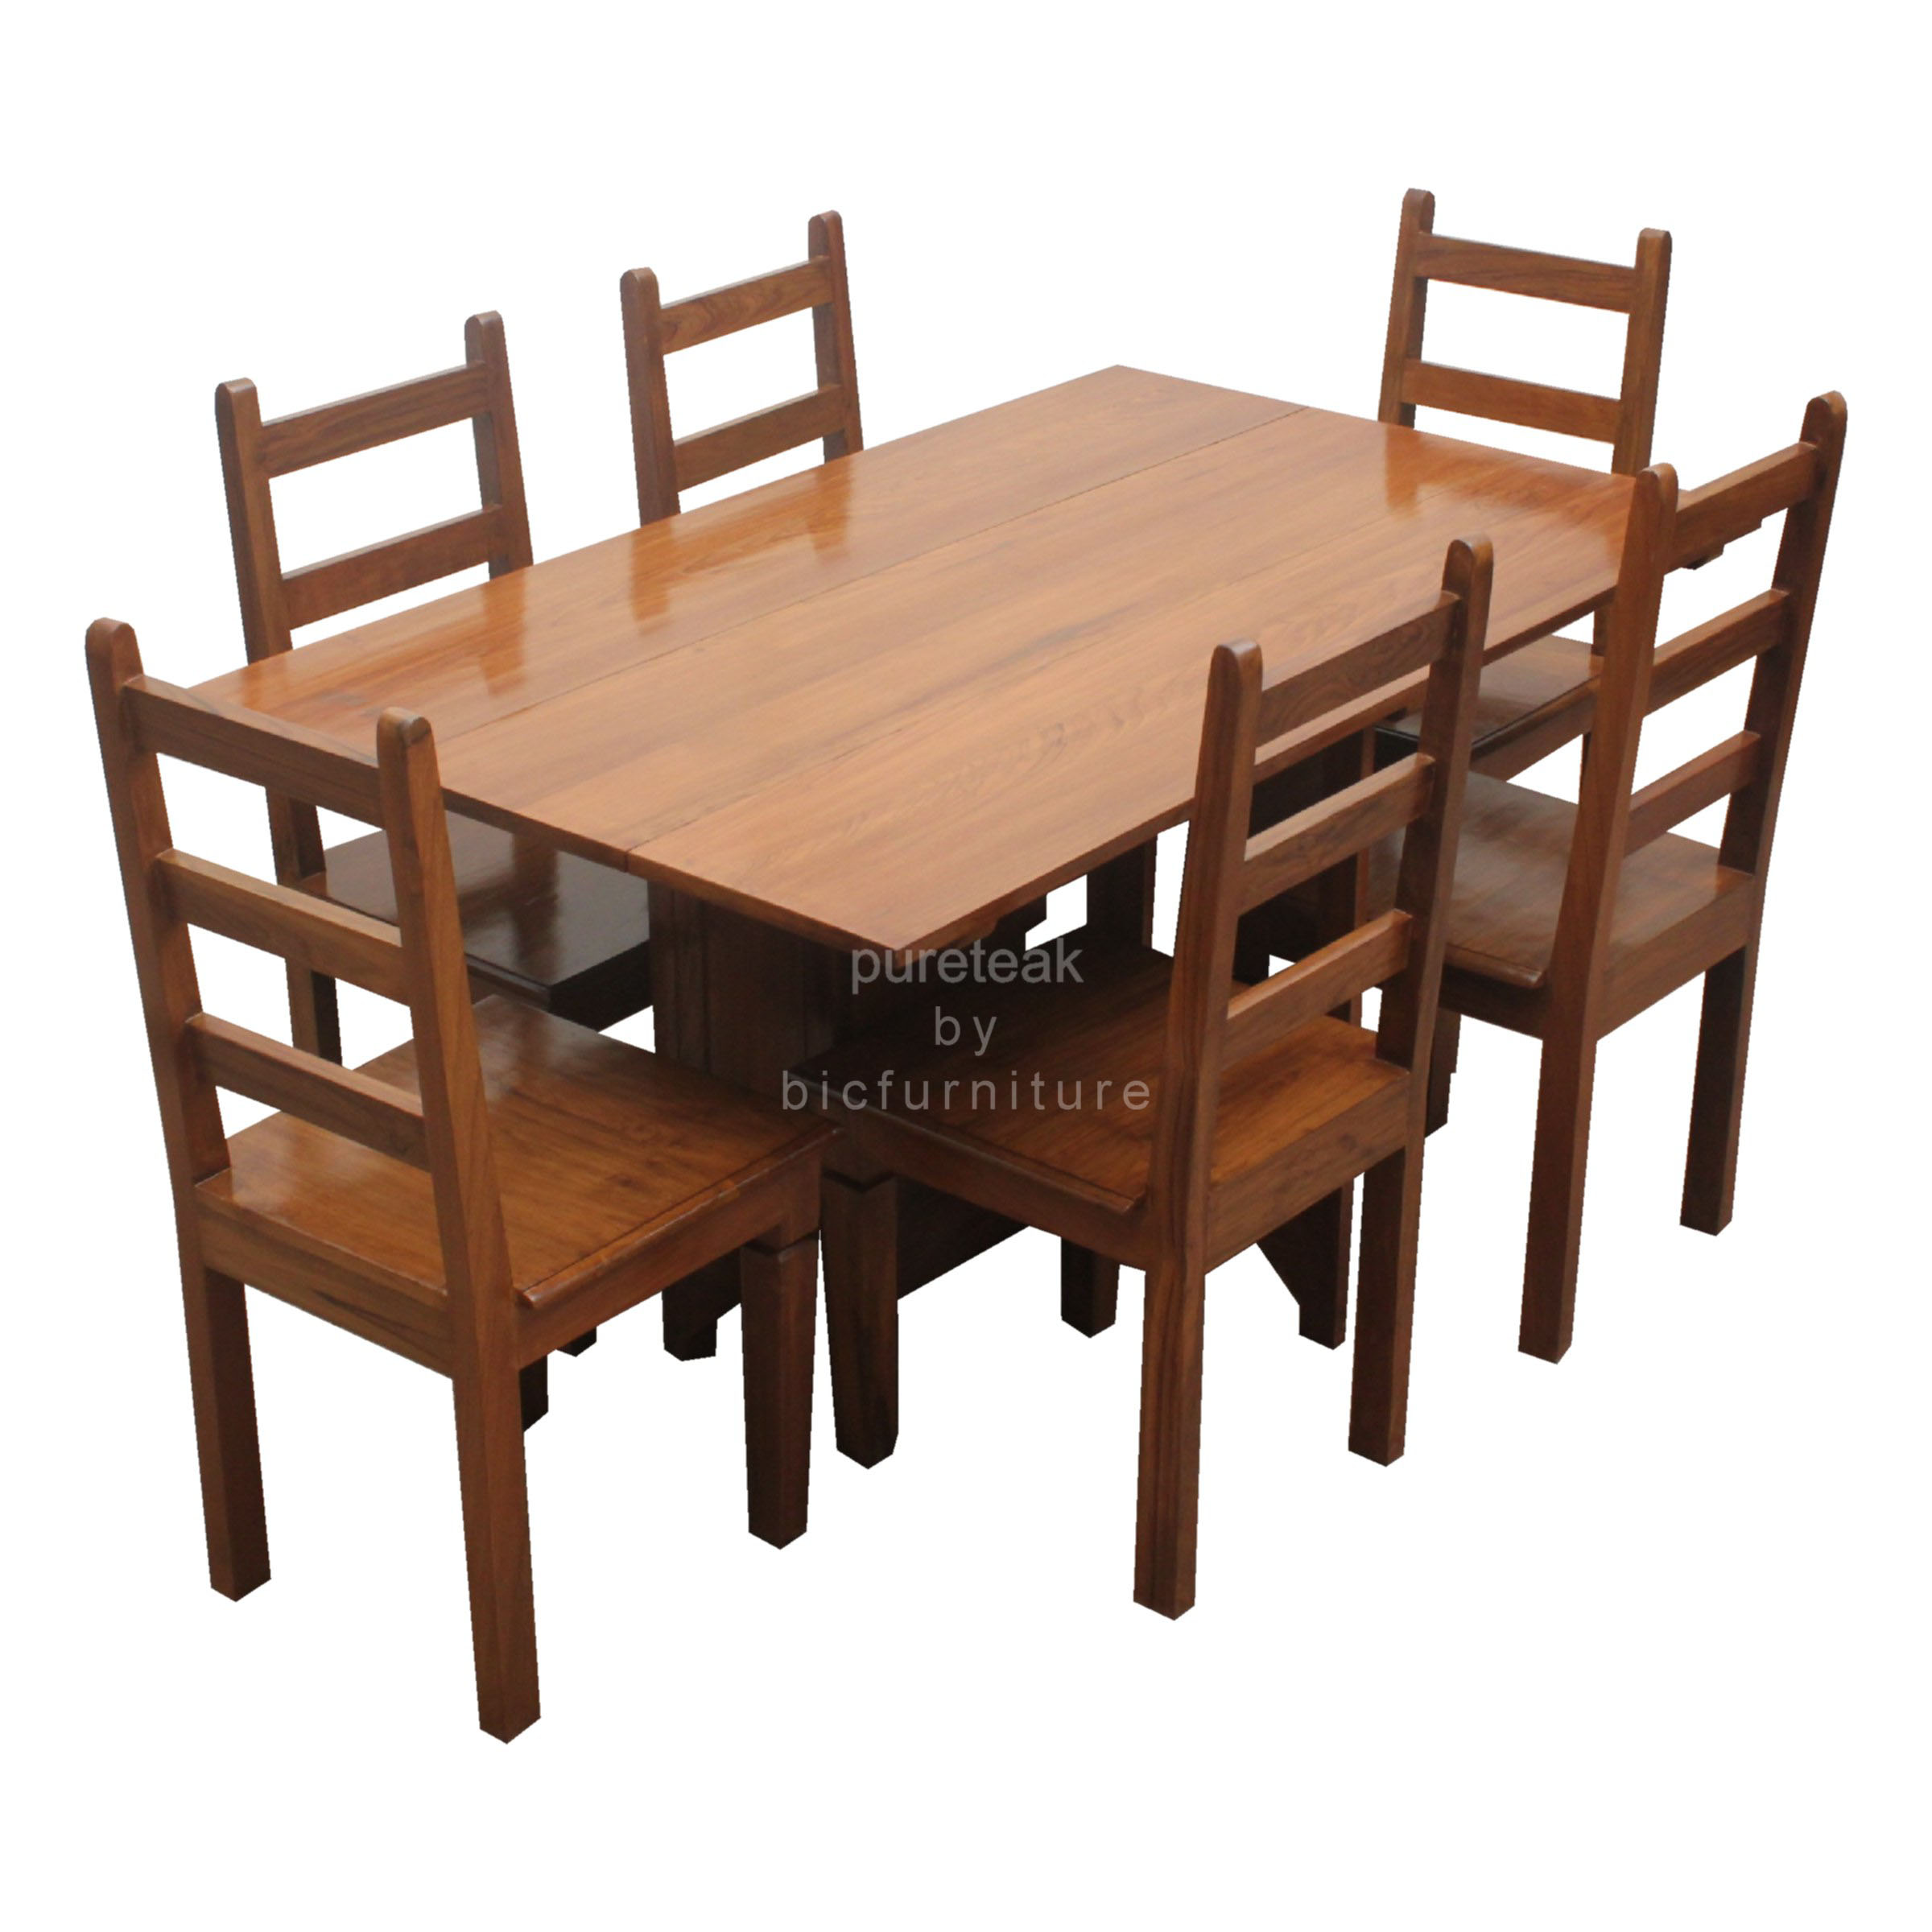 teak dining room table and chairs. Six_seater_dinning _chair_\u0026_table. Six_seater_dinning_table_in_solid_wood. Solid_wood_foulding_dinning_table. Teak_wood_6_seater_dinning_table Teak Dining Room Table And Chairs